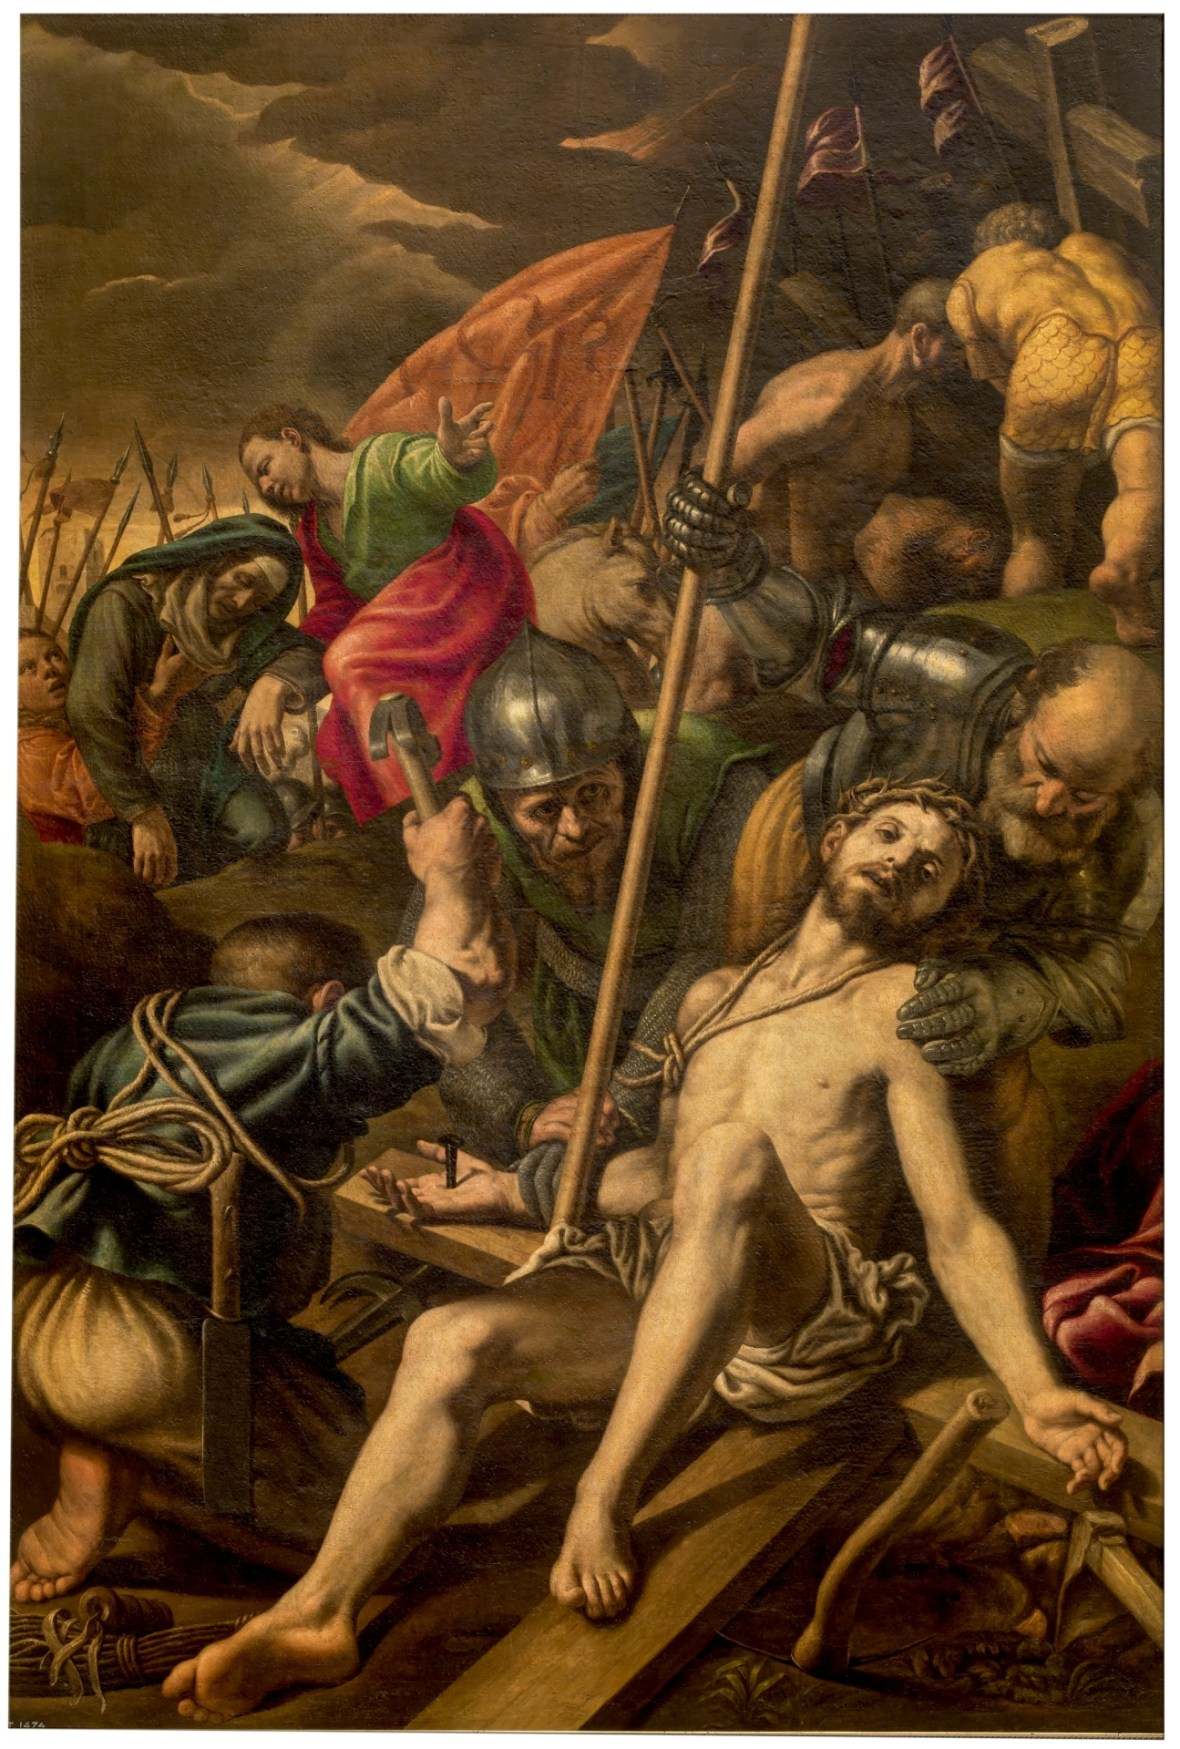 Vincenzo Campi, Christ Nailed to the Cross, 1577